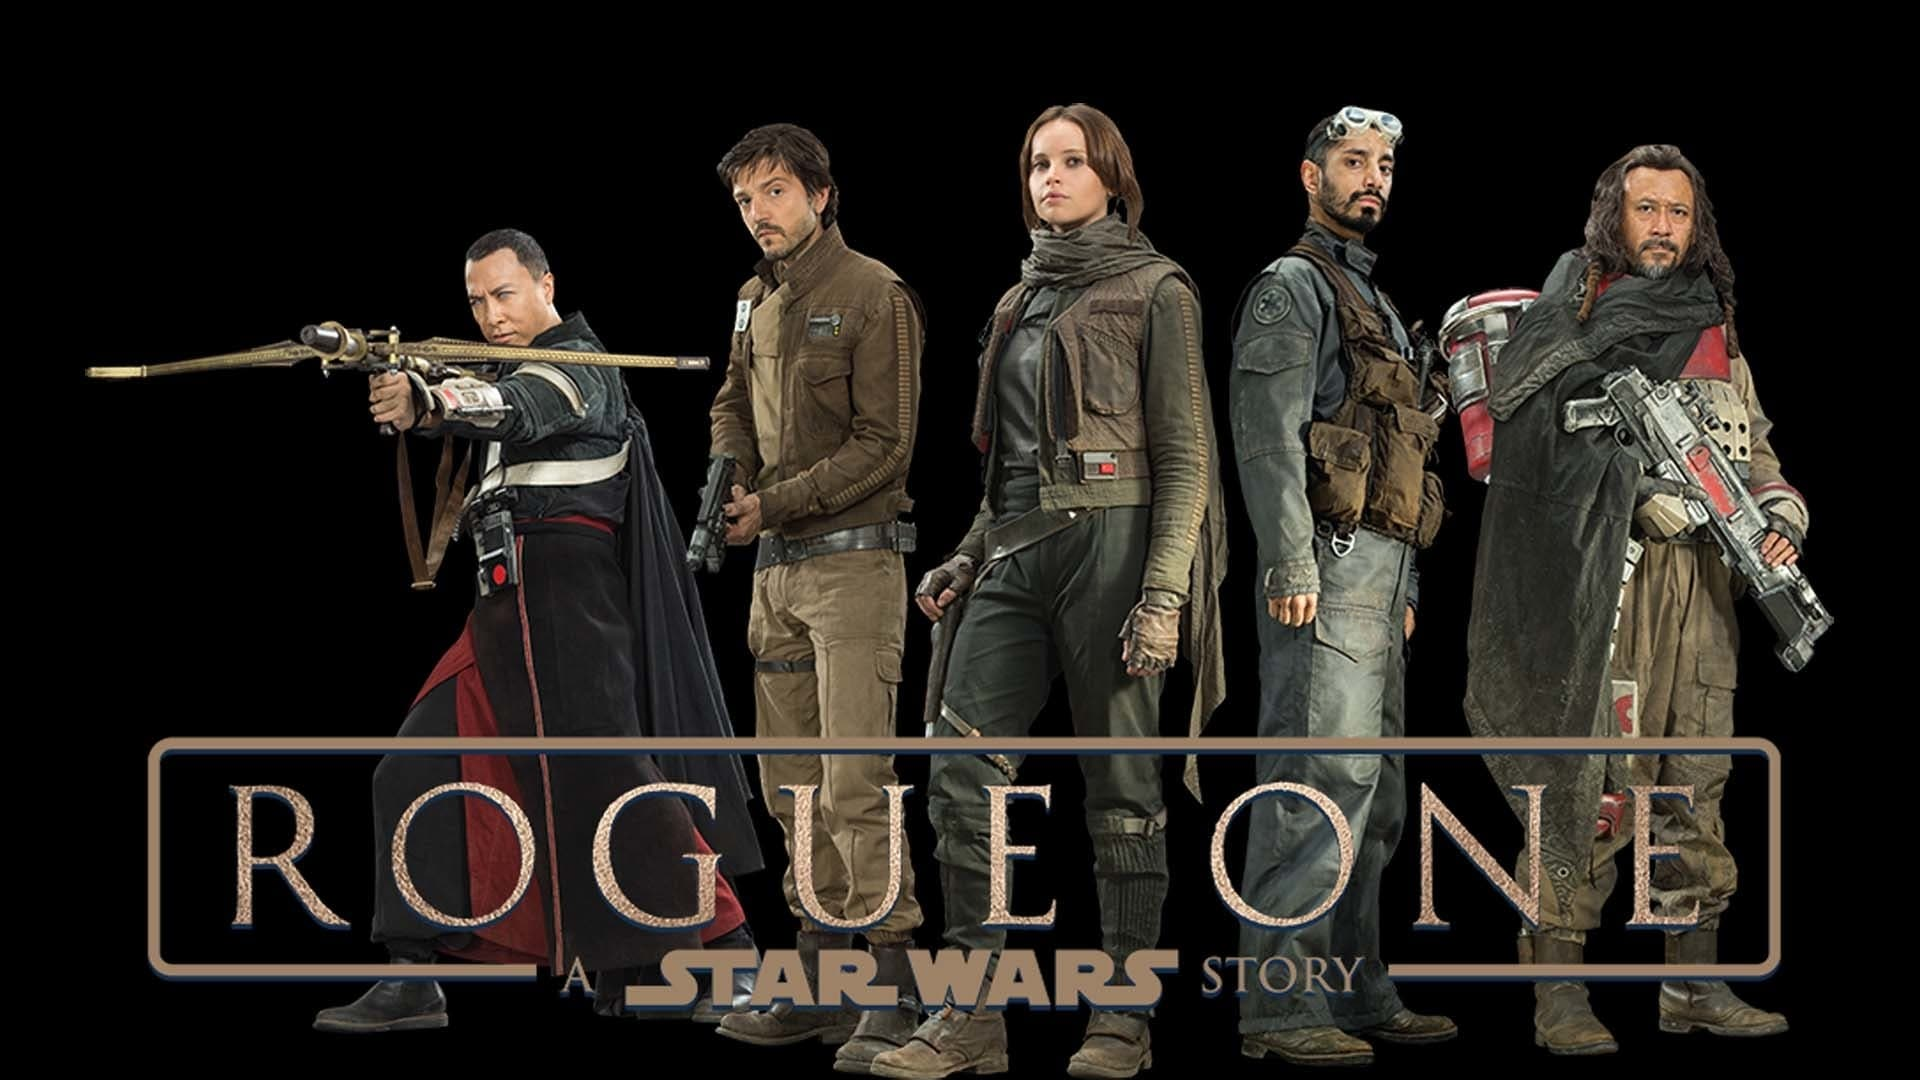 Watch Rogue One: A Star Wars Story 2016 Movies Trailer